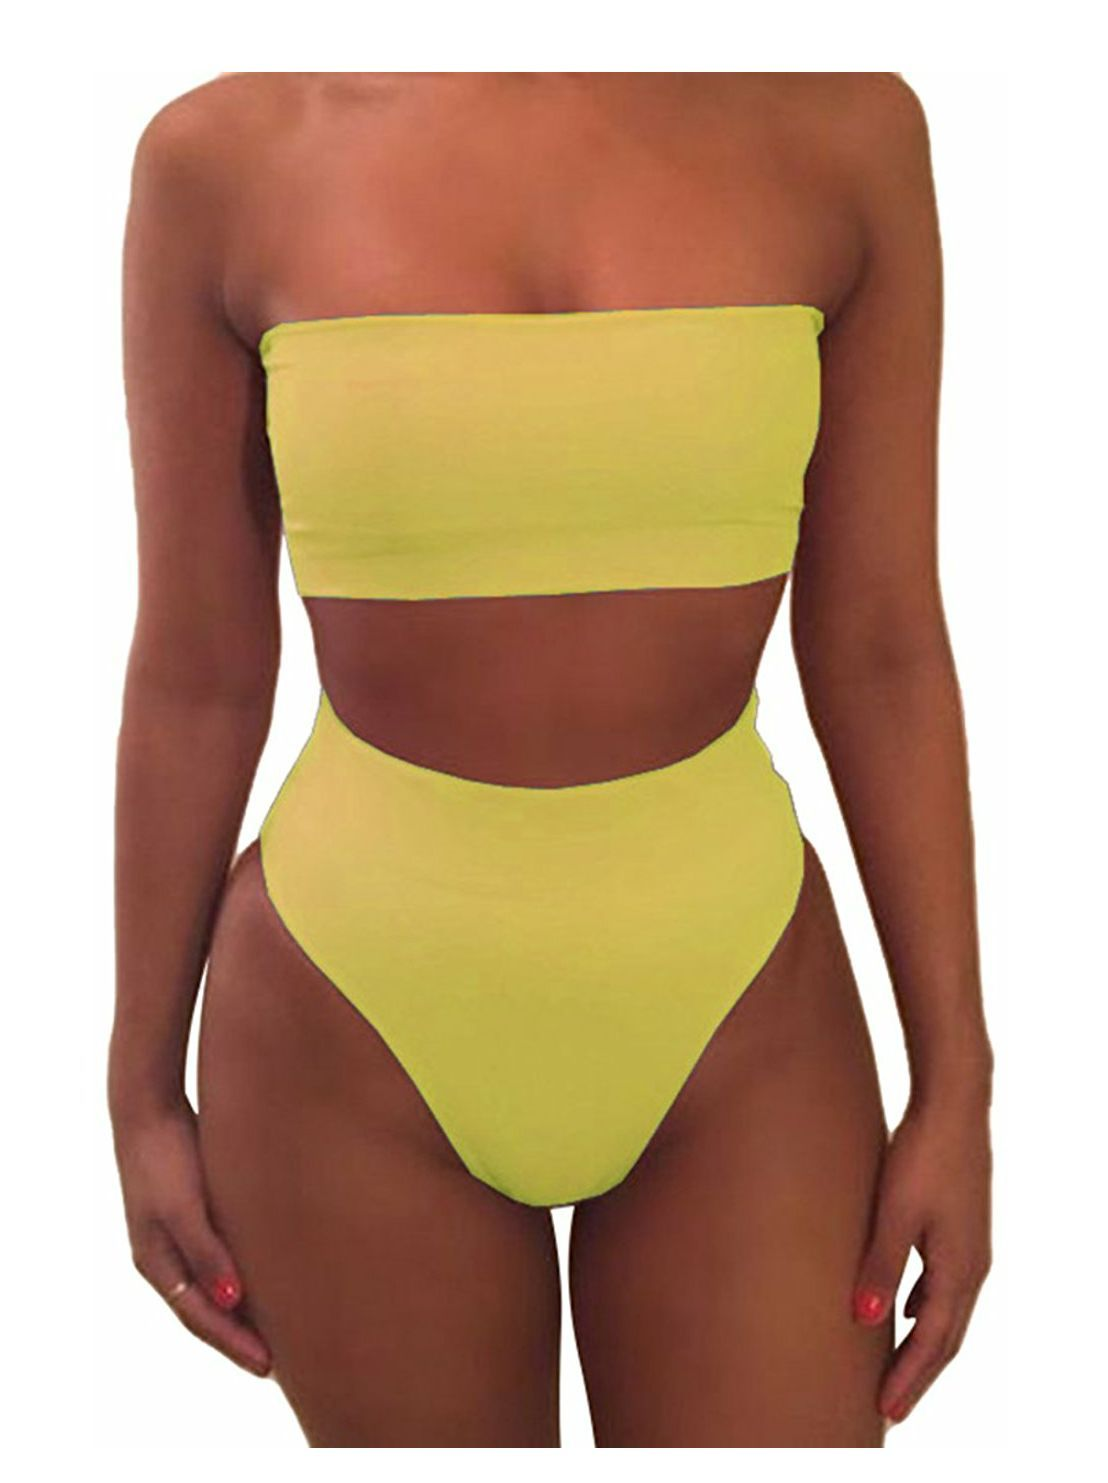 0a52b8093c9 Two Piece Tube Top Bikini | Casual | Tube top bikini, Swimwear, Two ...